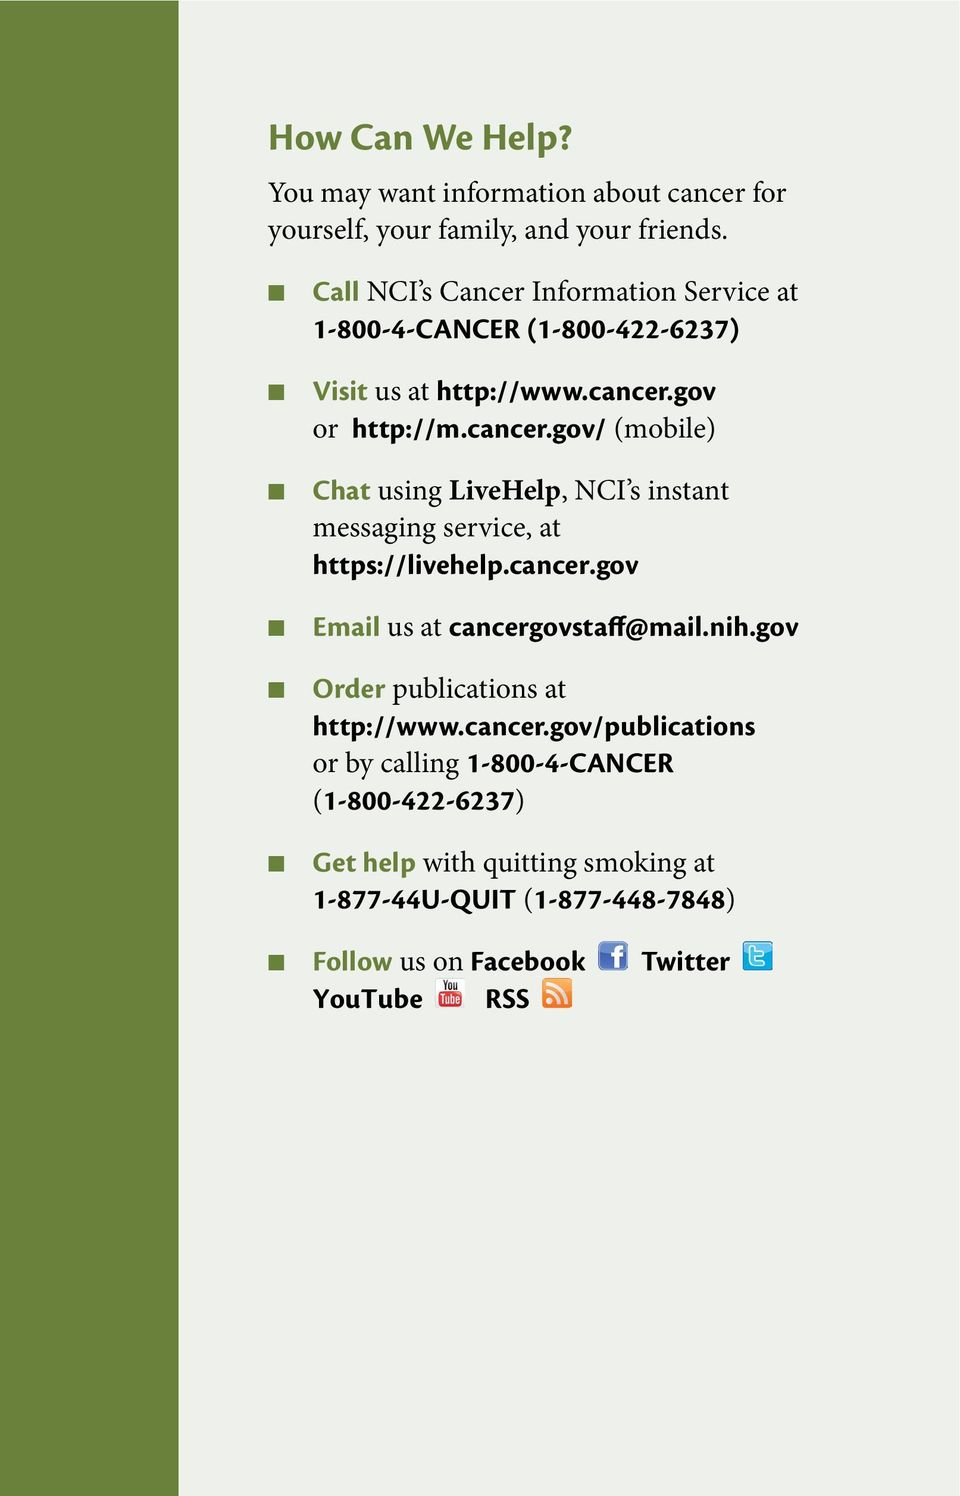 gov or http://m.cancer.gov/ (mobile) Chat using LiveHelp, NCI s instant messaging service, at https://livehelp.cancer.gov Email us at cancergovstaff@mail.